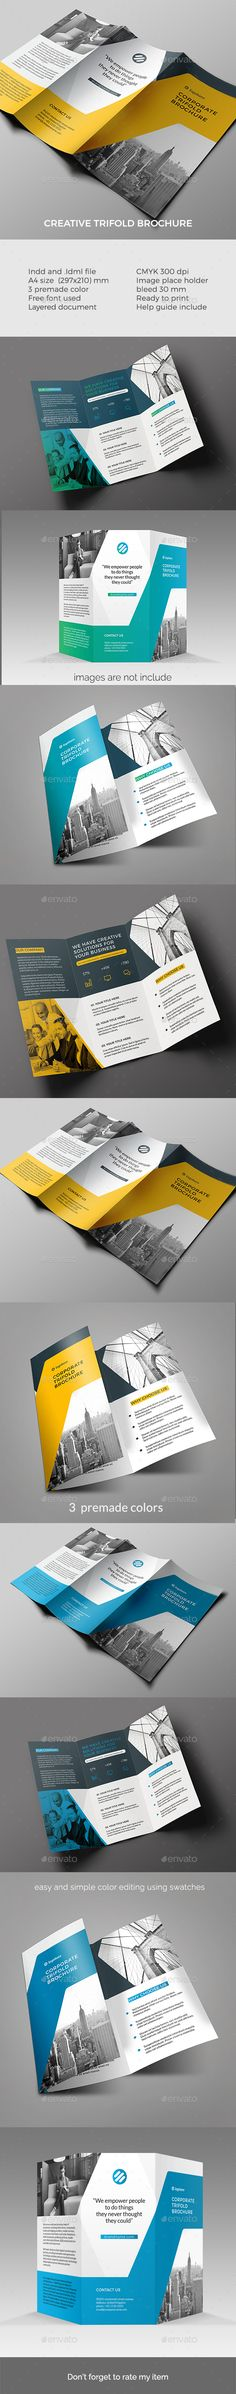 Trifold Brochure Template InDesign INDD. Download here: http://graphicriver.net/item/trifold-brochure-/16442772?ref=ksioks